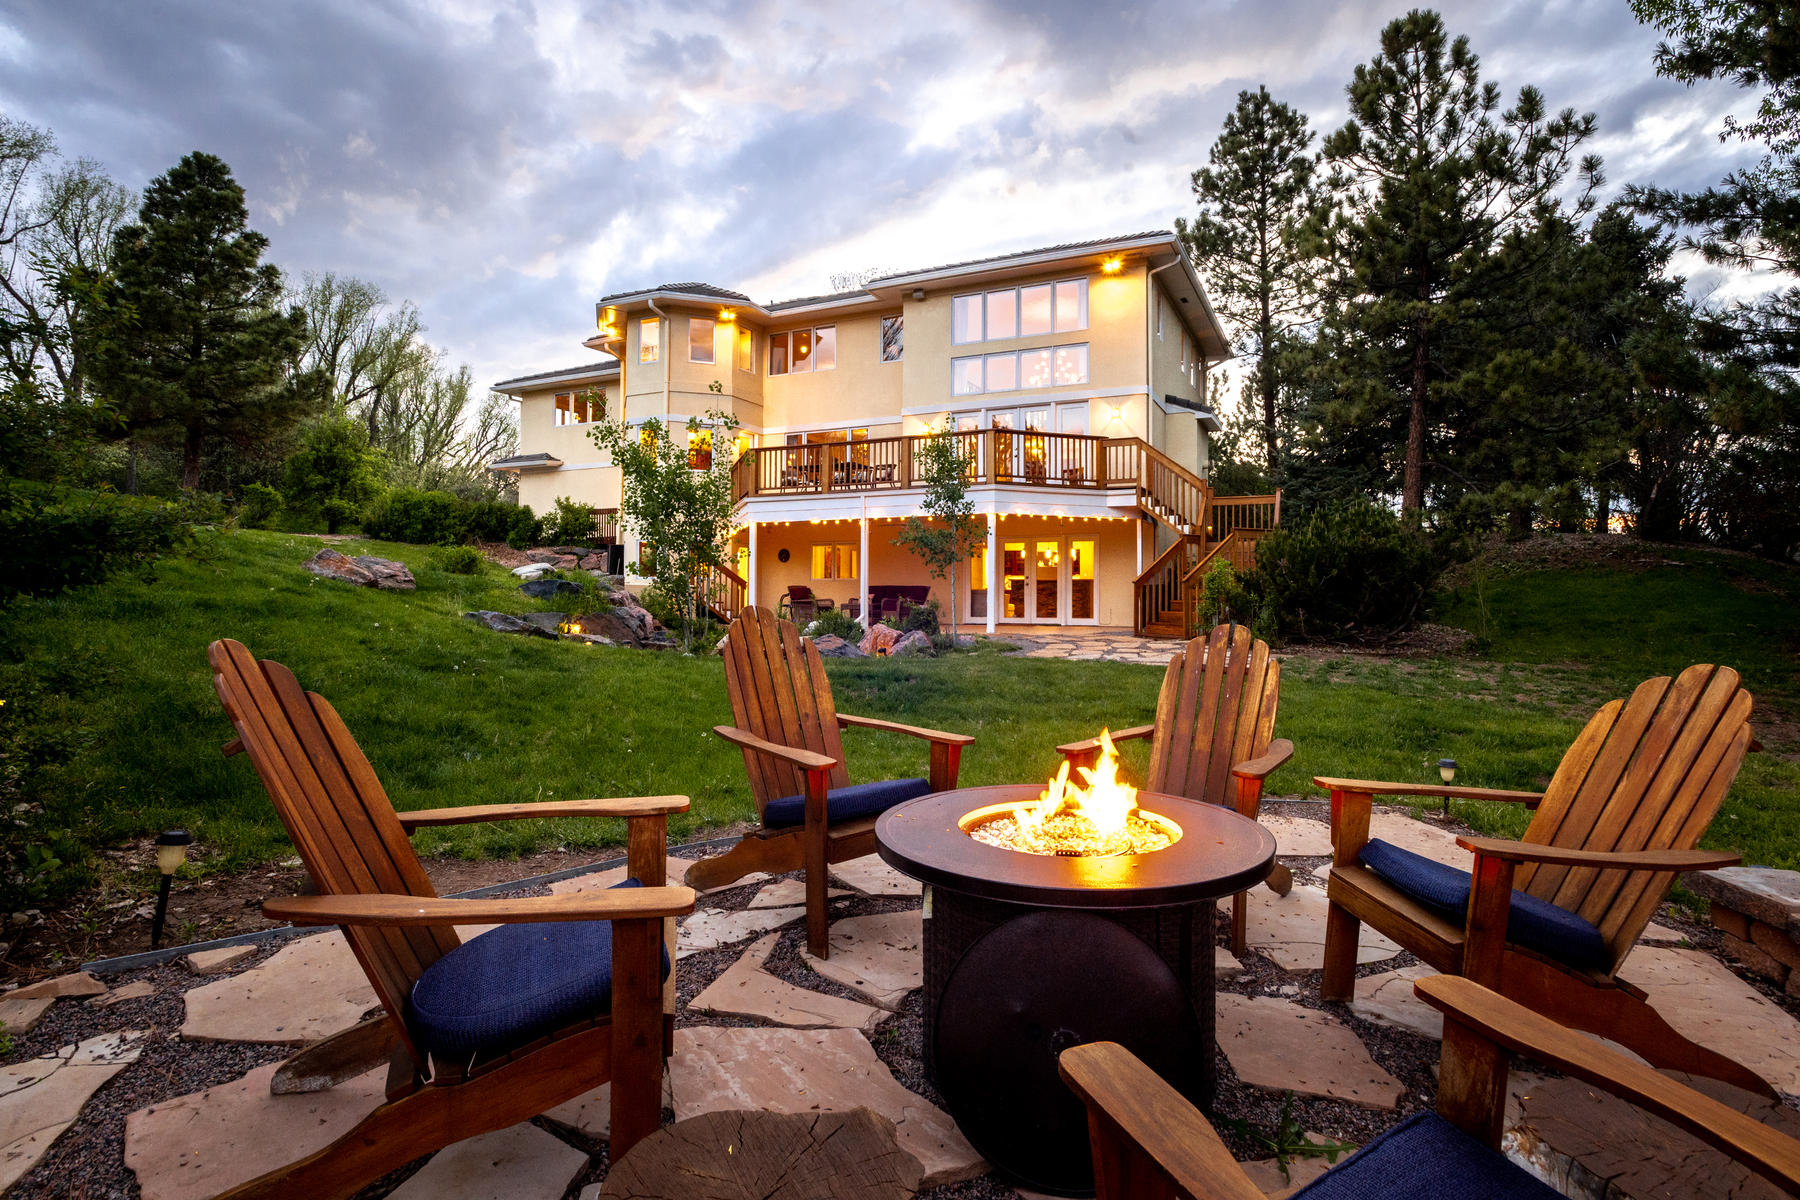 Casa unifamiliar en venta en/de 5878 S Dry Creek Court, Greenwood Village, Colorado ,80121  , EUA